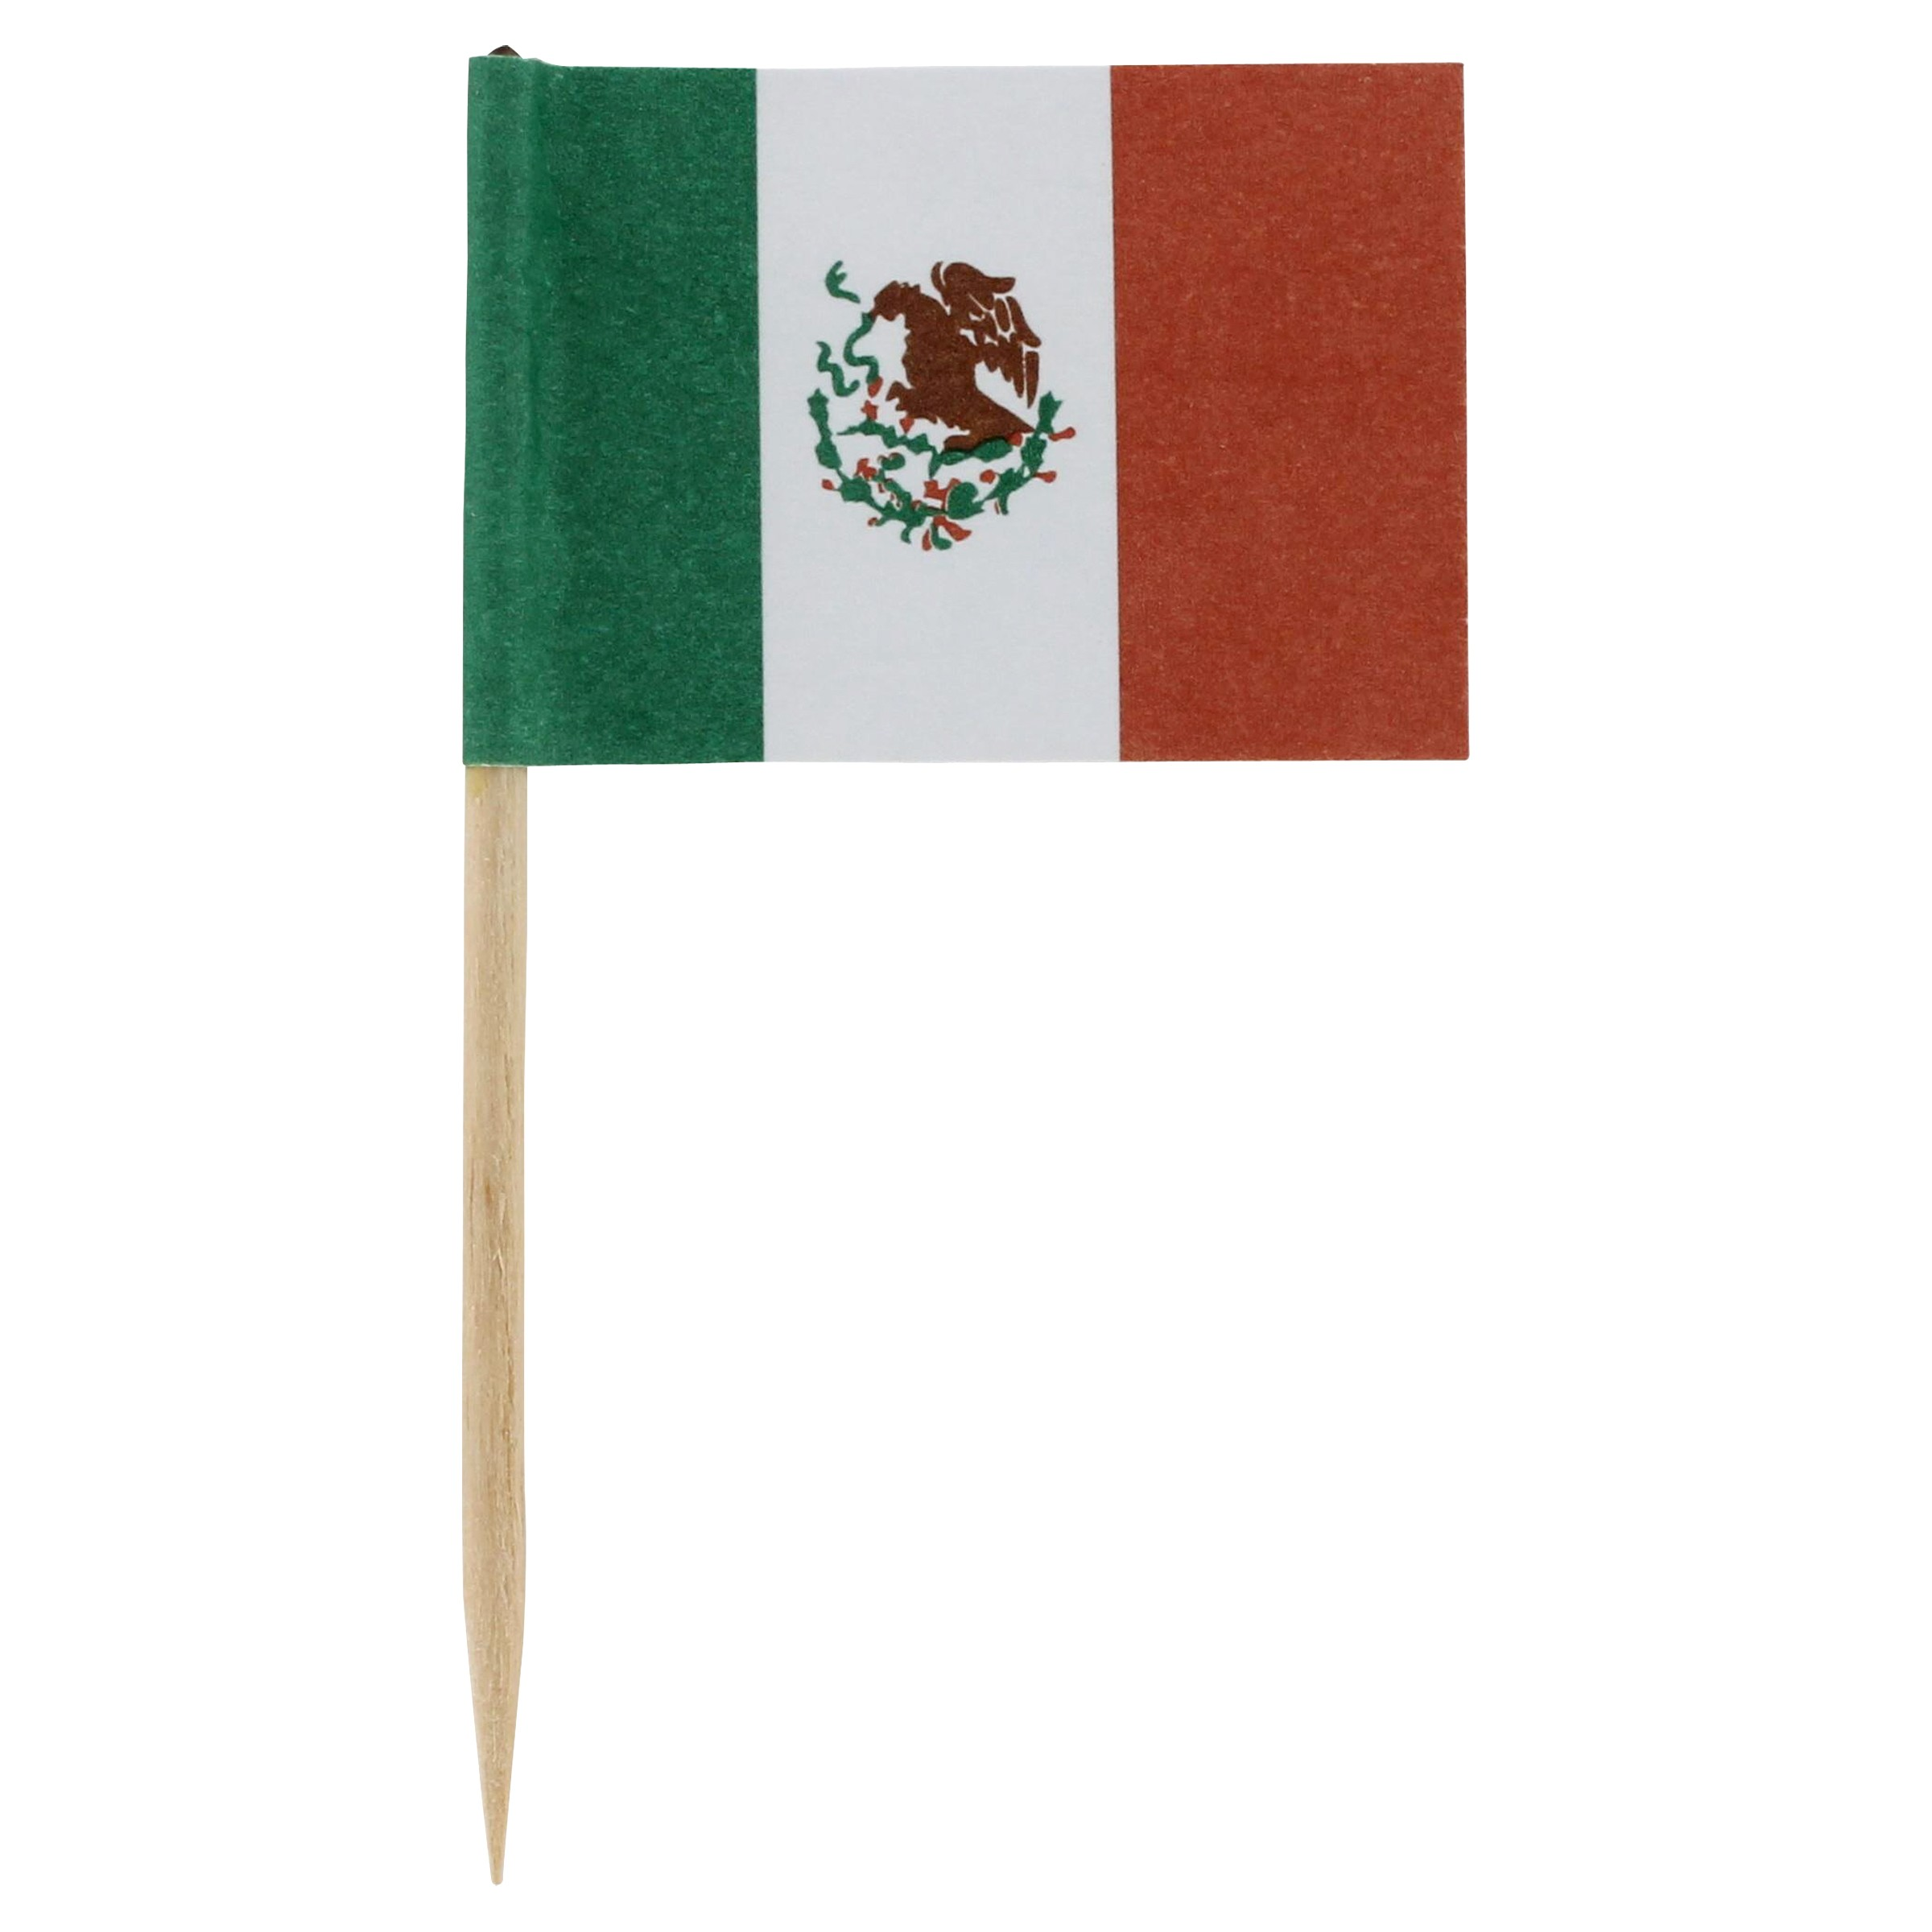 Mexican flag images free download clip art 2